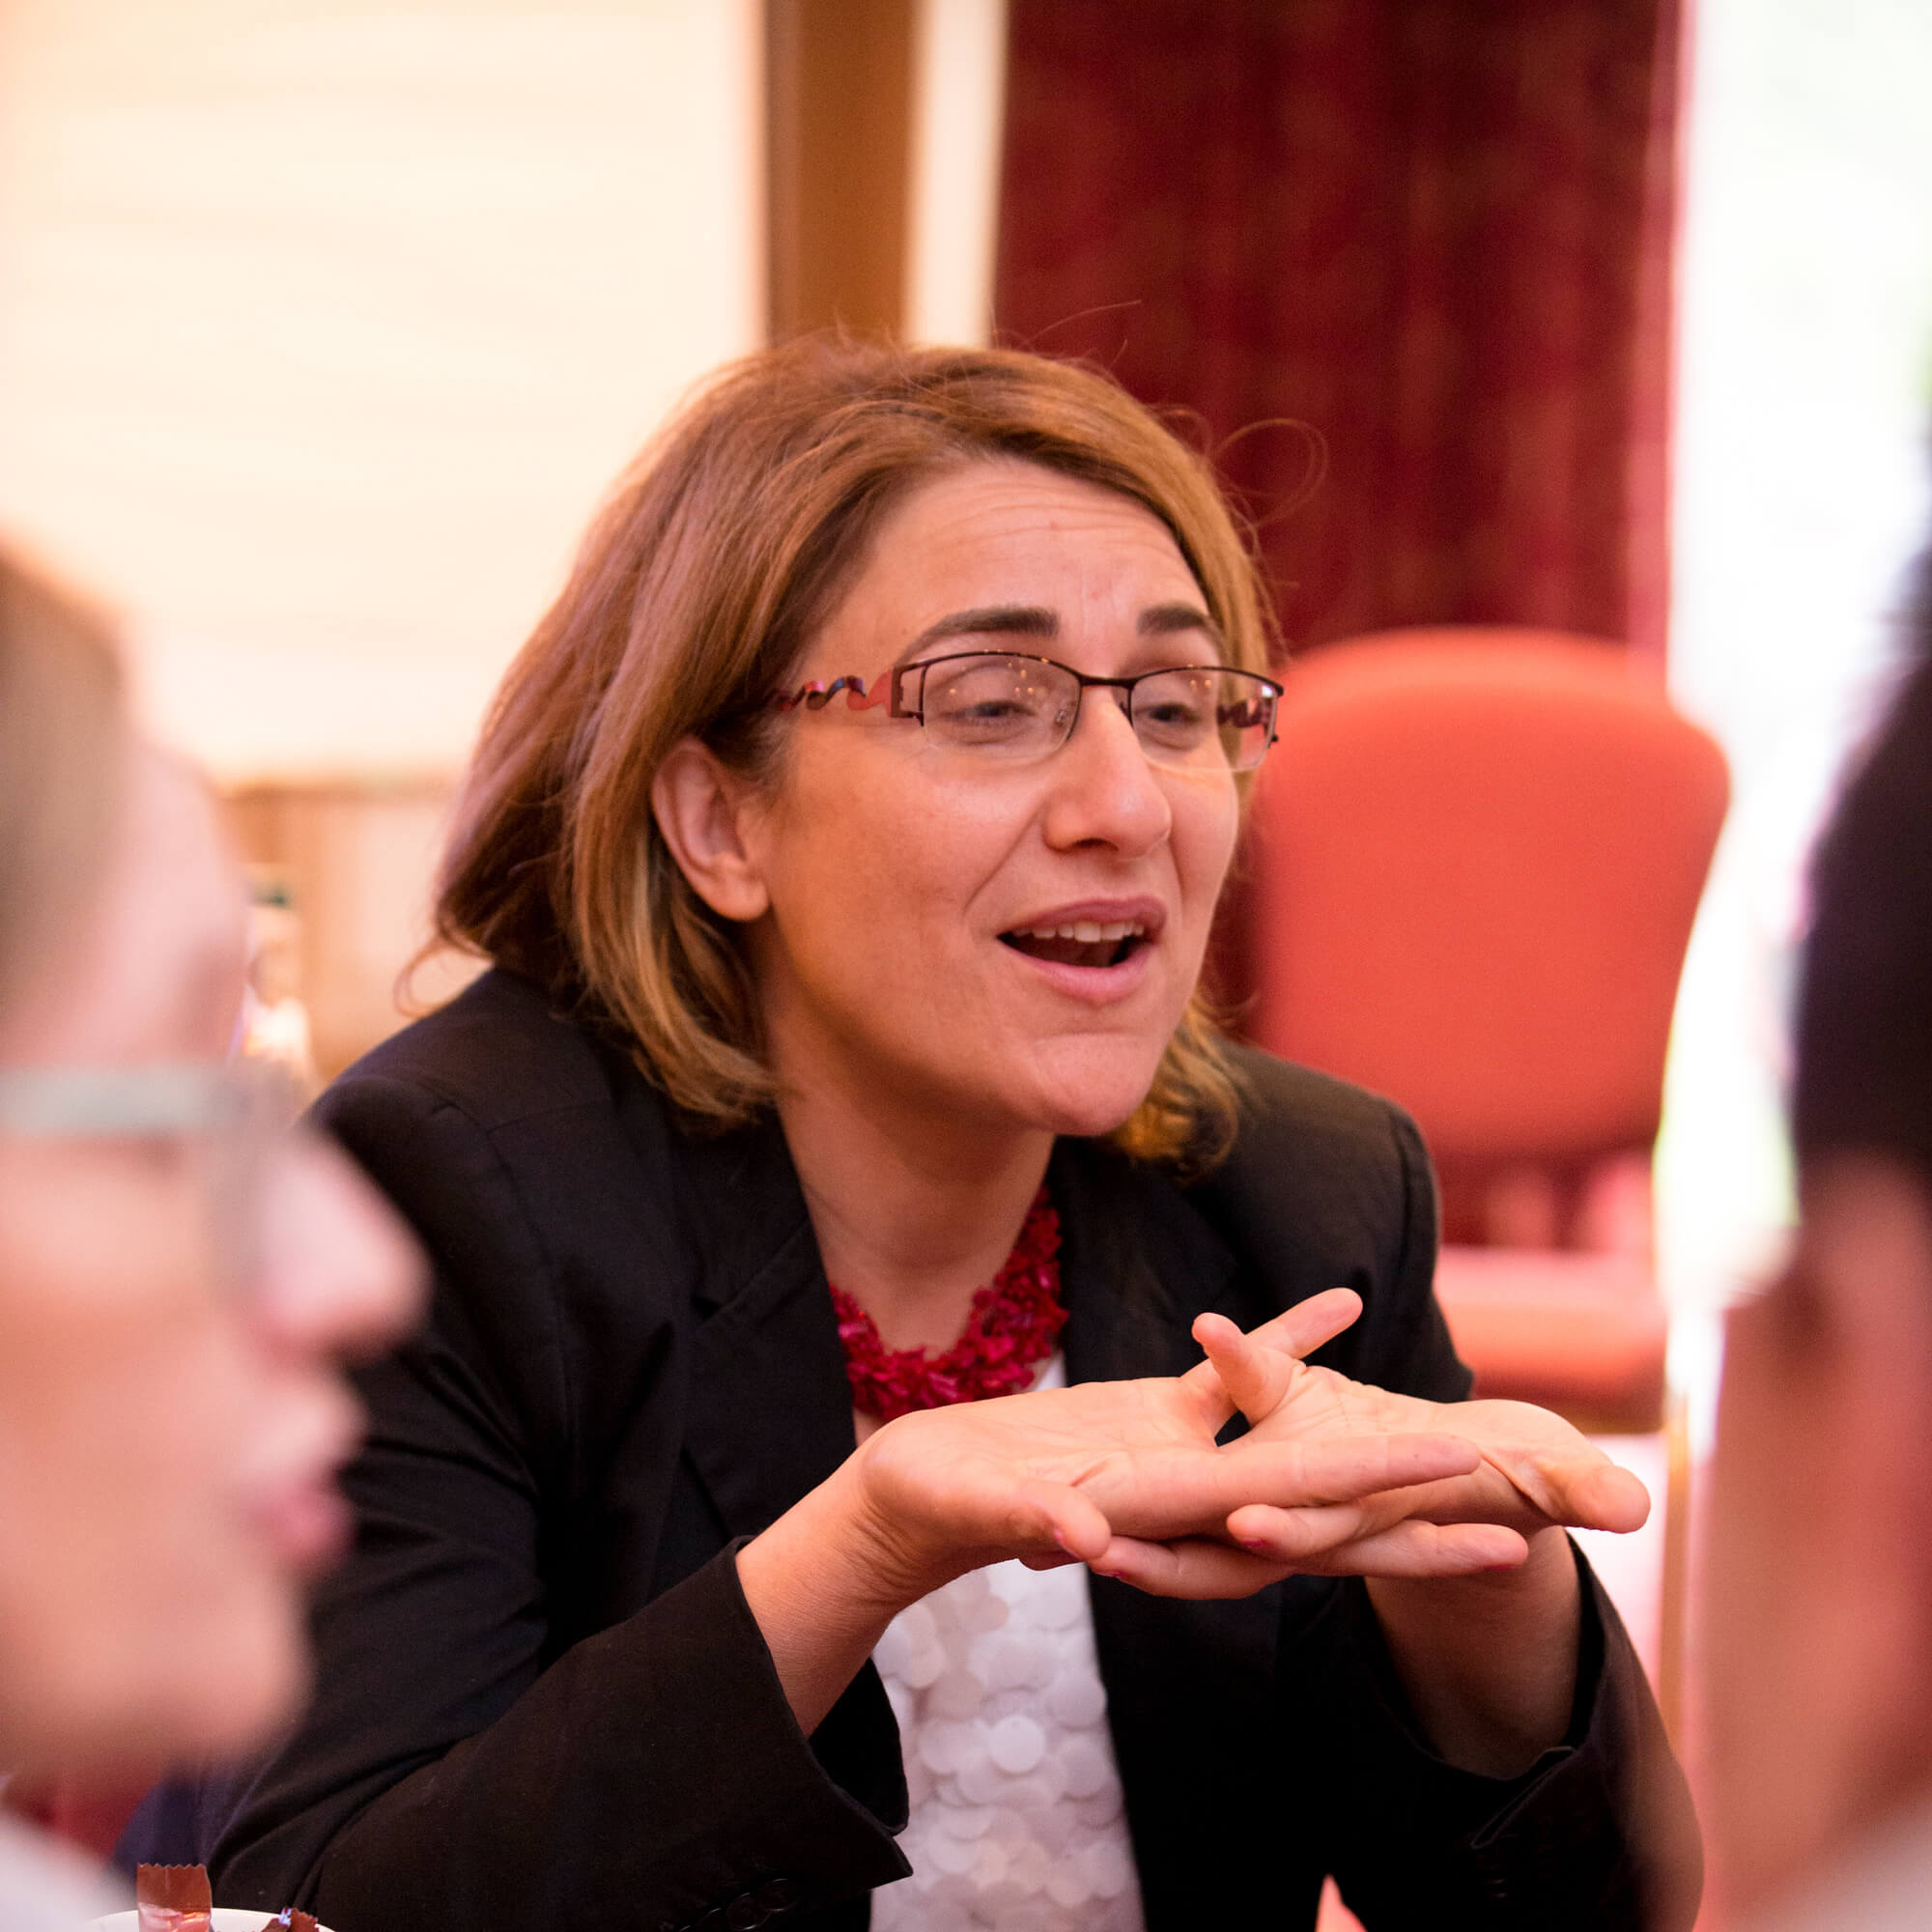 Woman with light brown hair and glasses sitting at a table holding a discussion